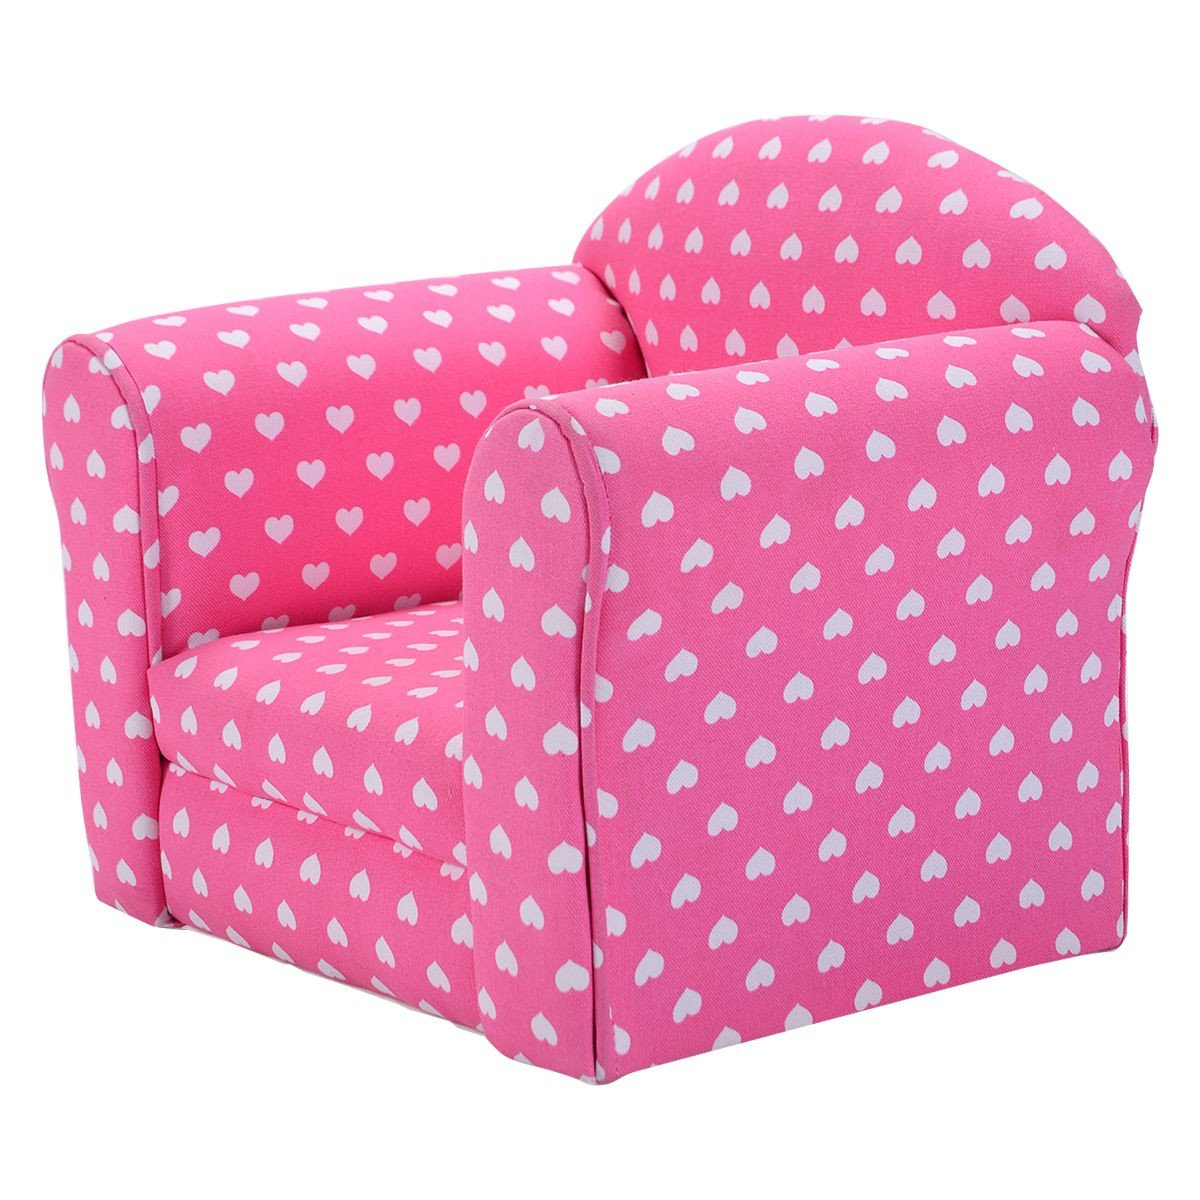 Heart-shaped Printed Armrest Children Couch 2 Colors - By Choice Products (Pink) by By Choice Products